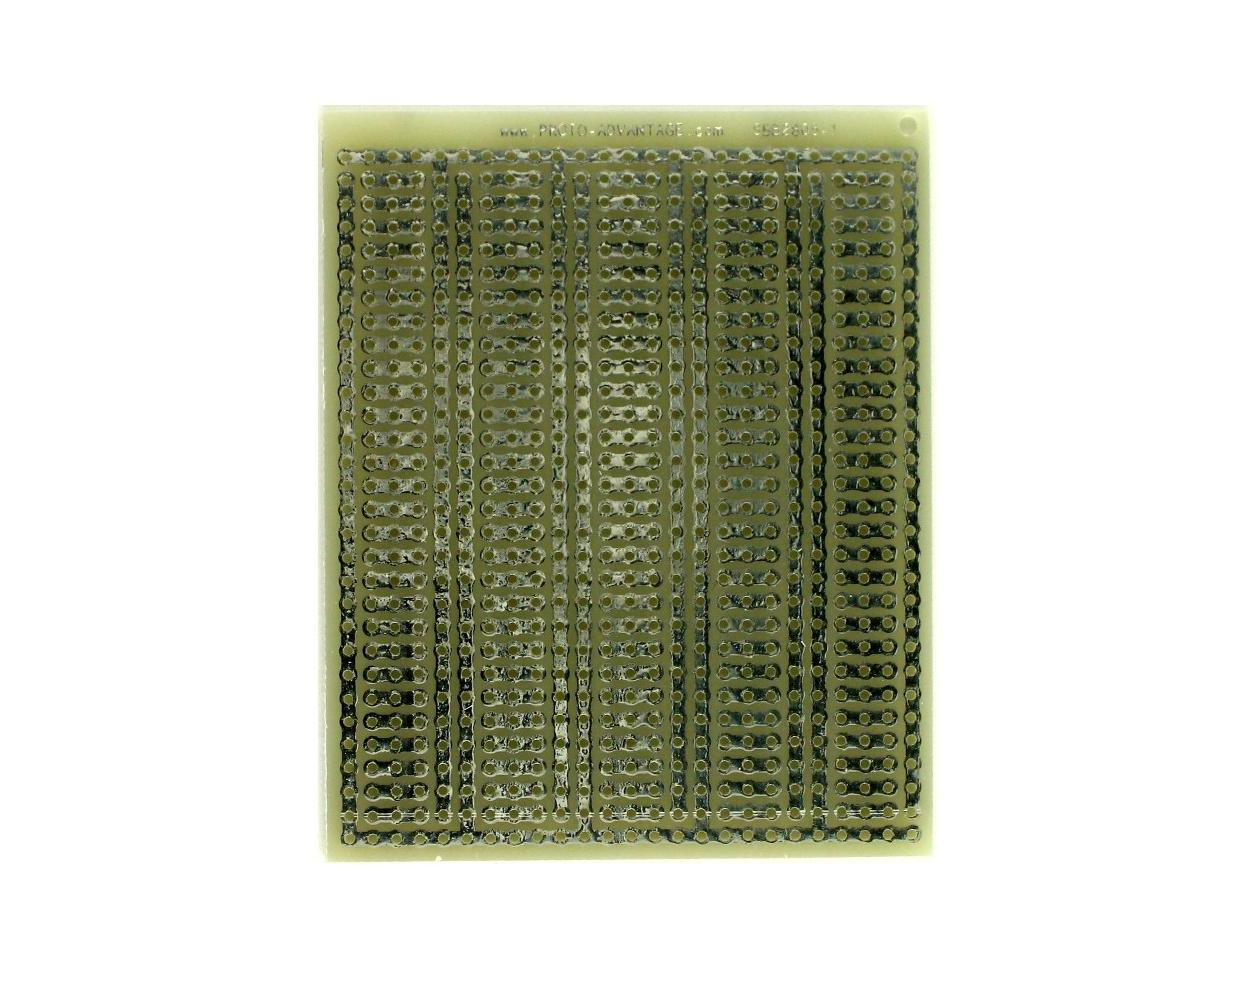 Solder Breadboard (28 row 5 column) 0